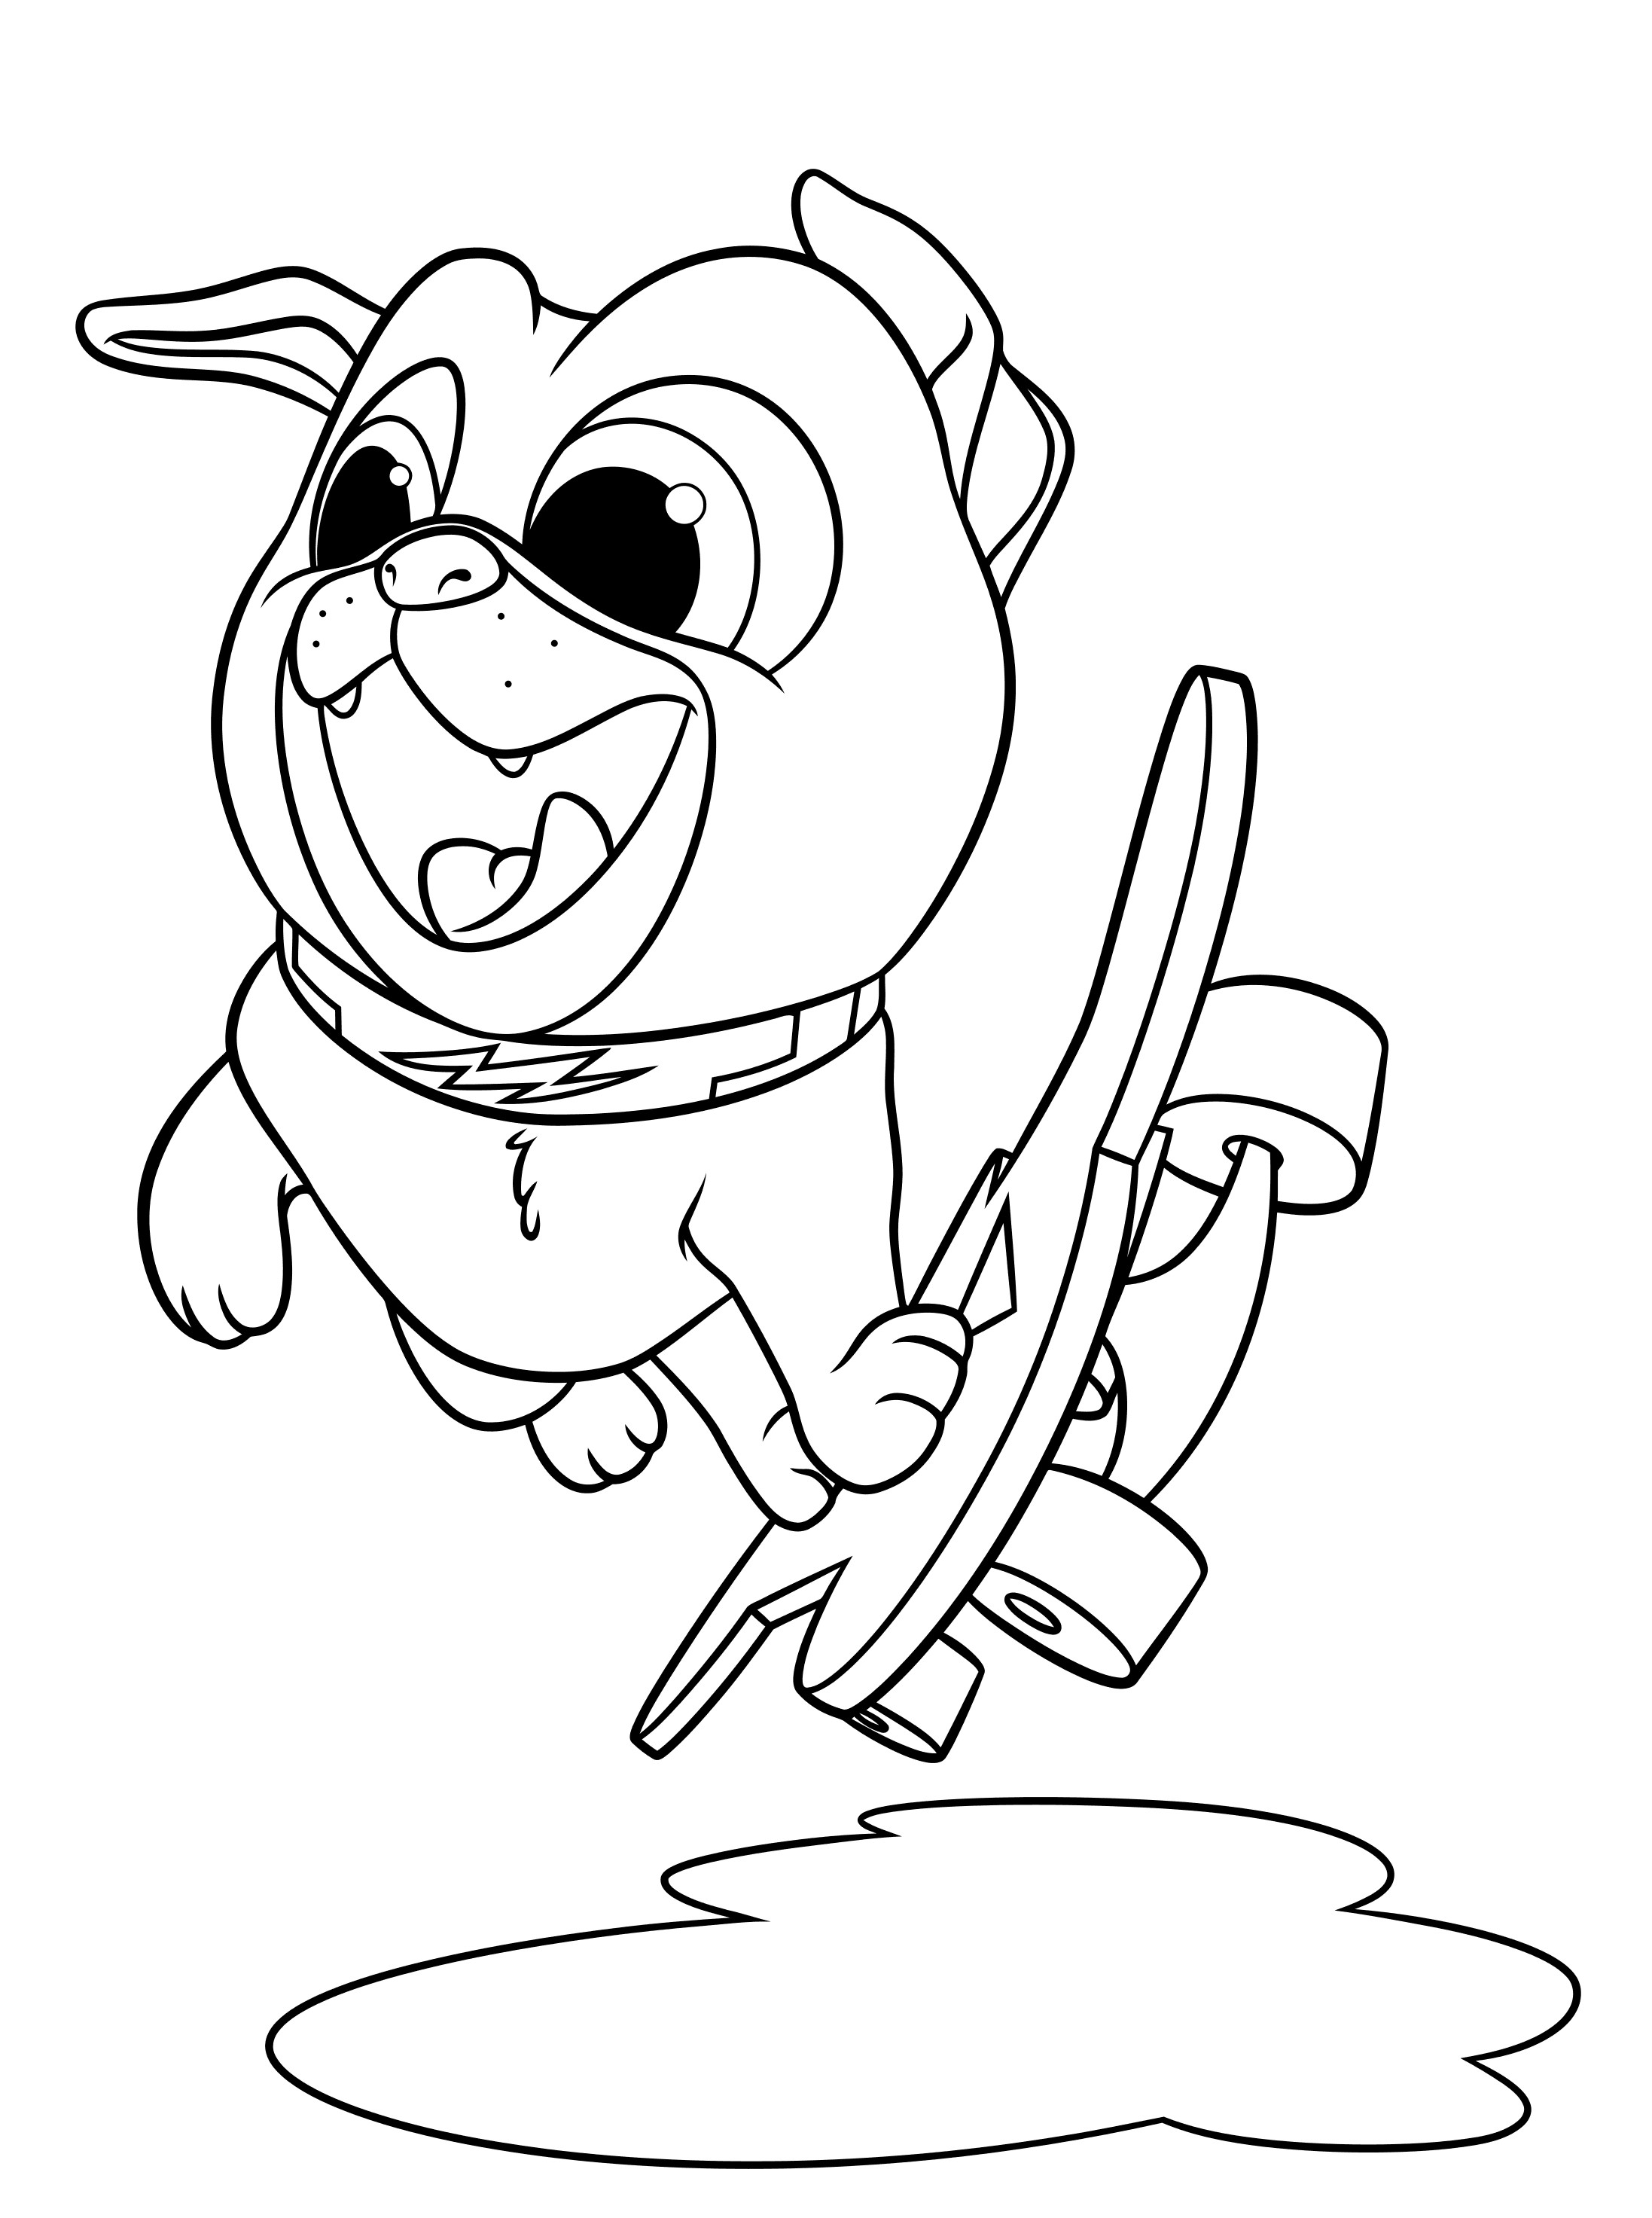 coloring puppy dog pals puppy dog pals coloring pages to download and print for free dog puppy coloring pals